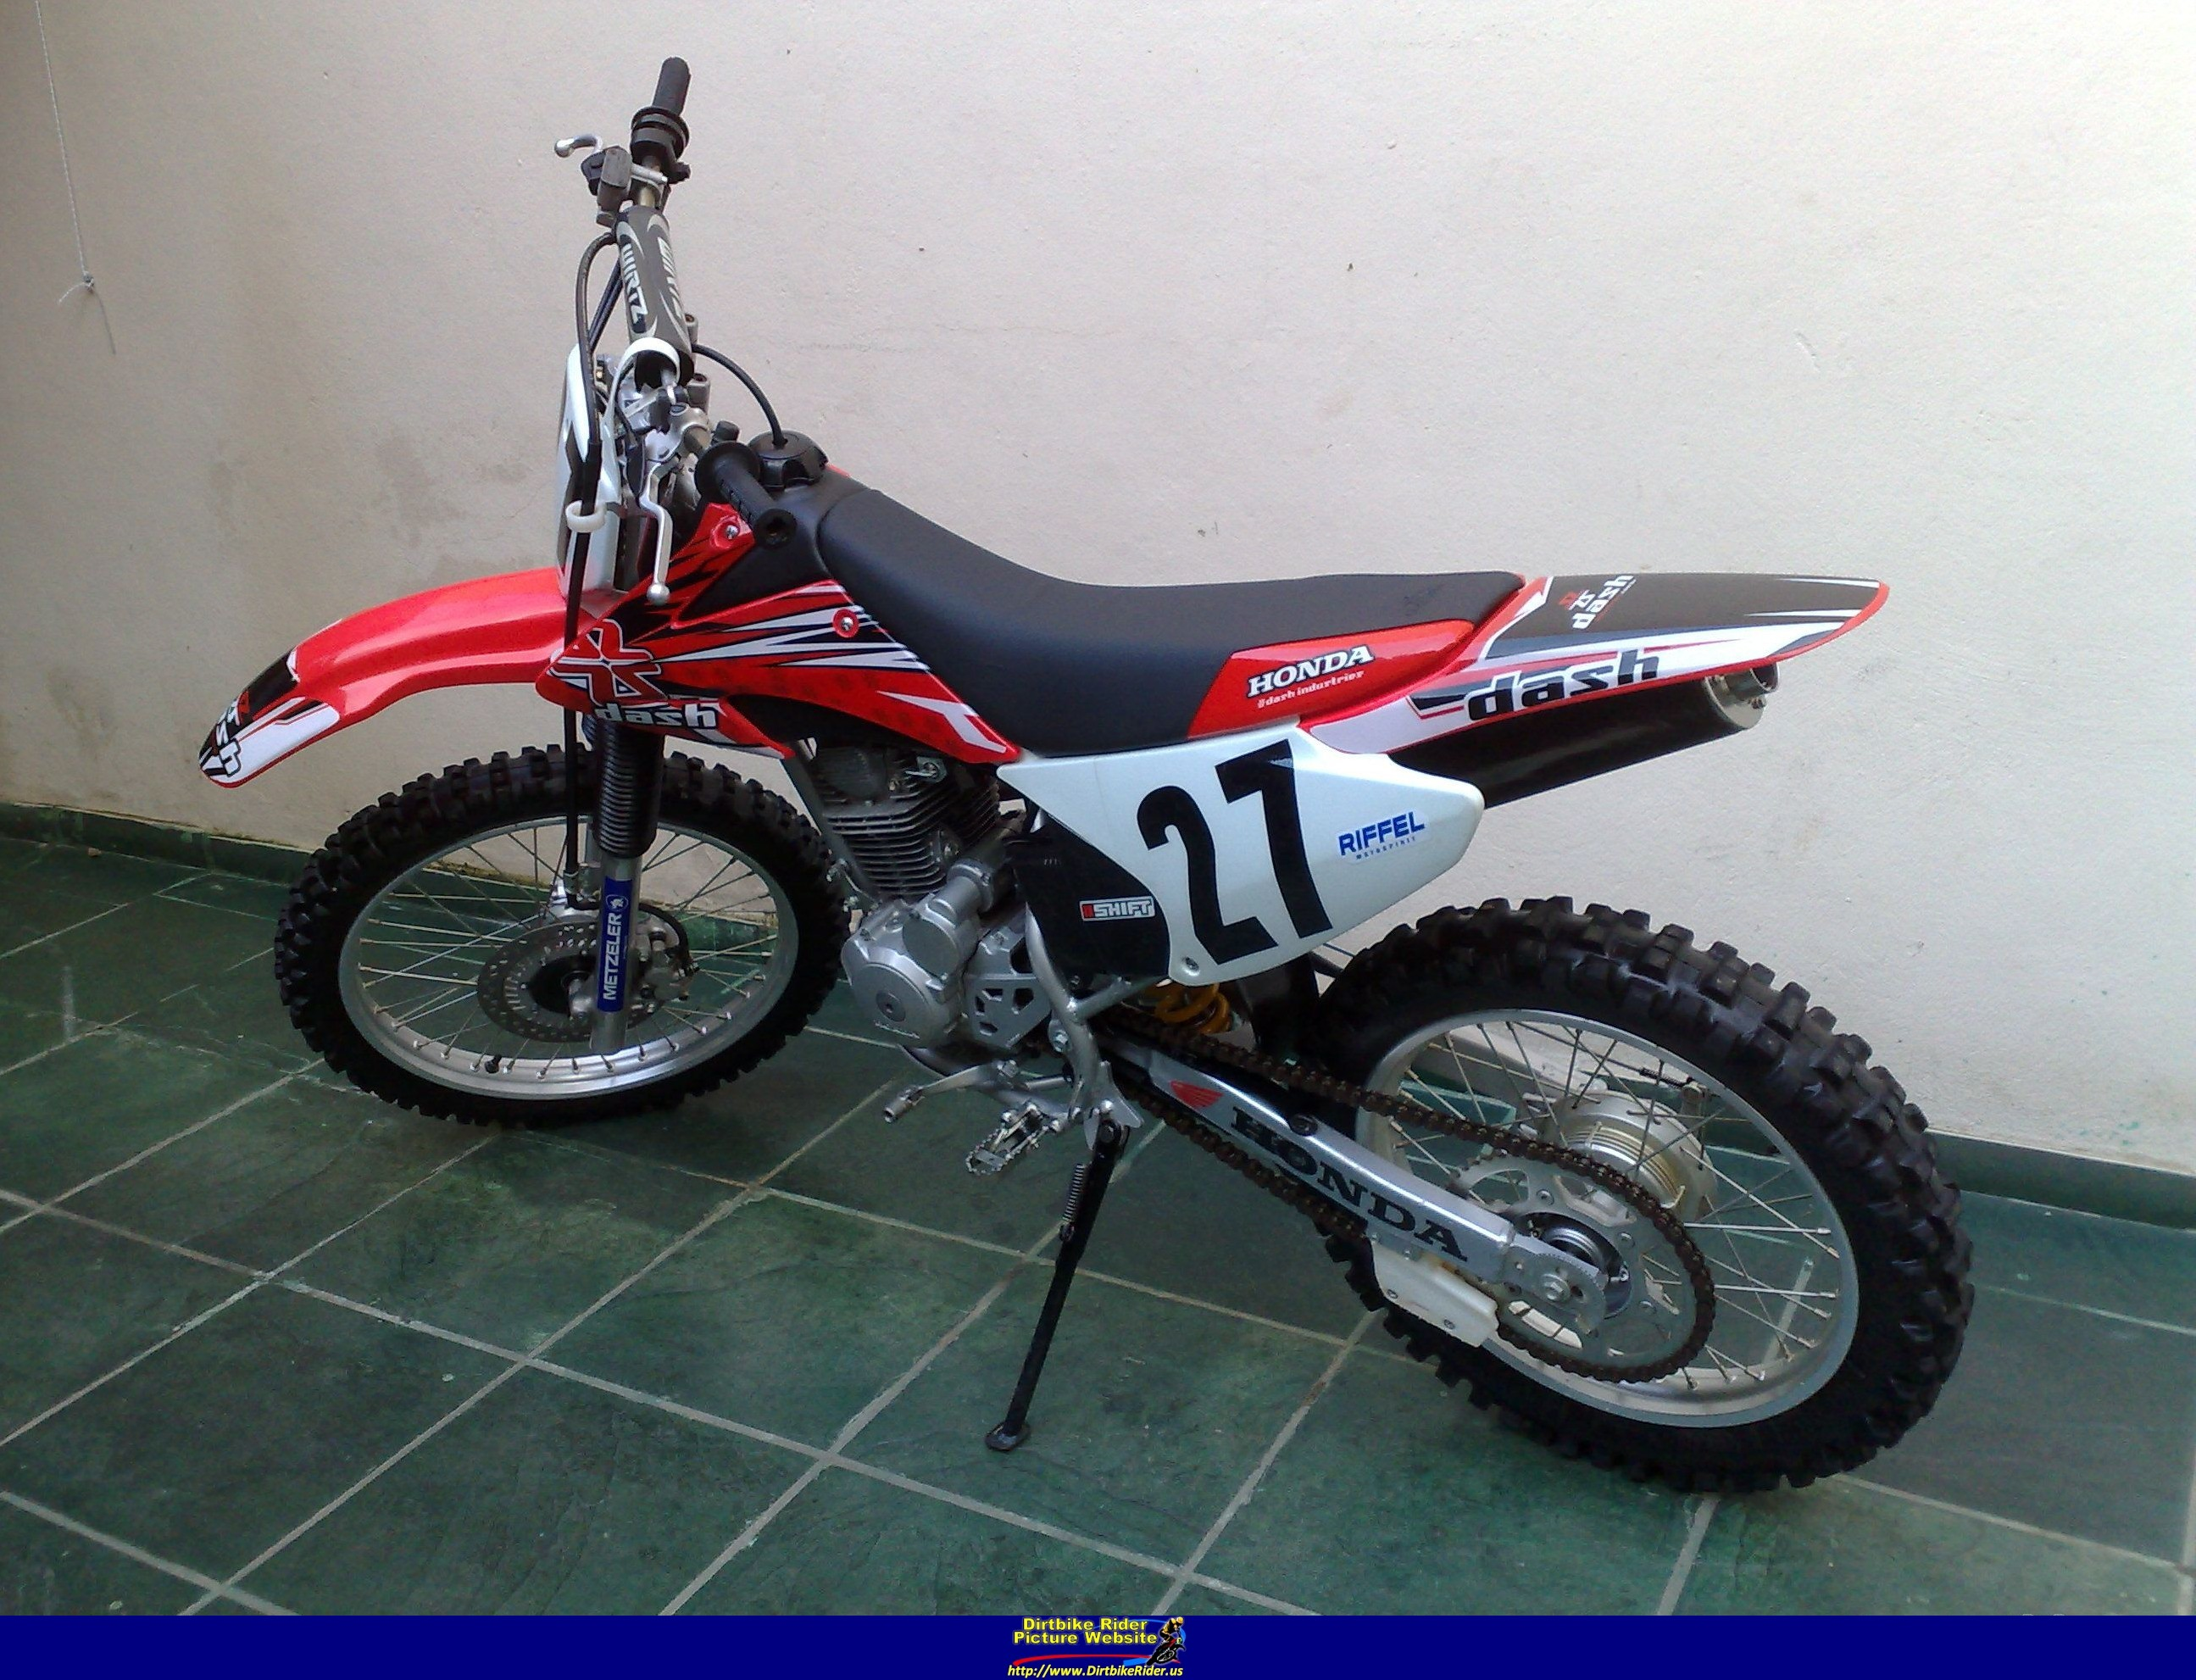 Groovy 2008 Honda Crf230F Moto Zombdrive Com Gmtry Best Dining Table And Chair Ideas Images Gmtryco